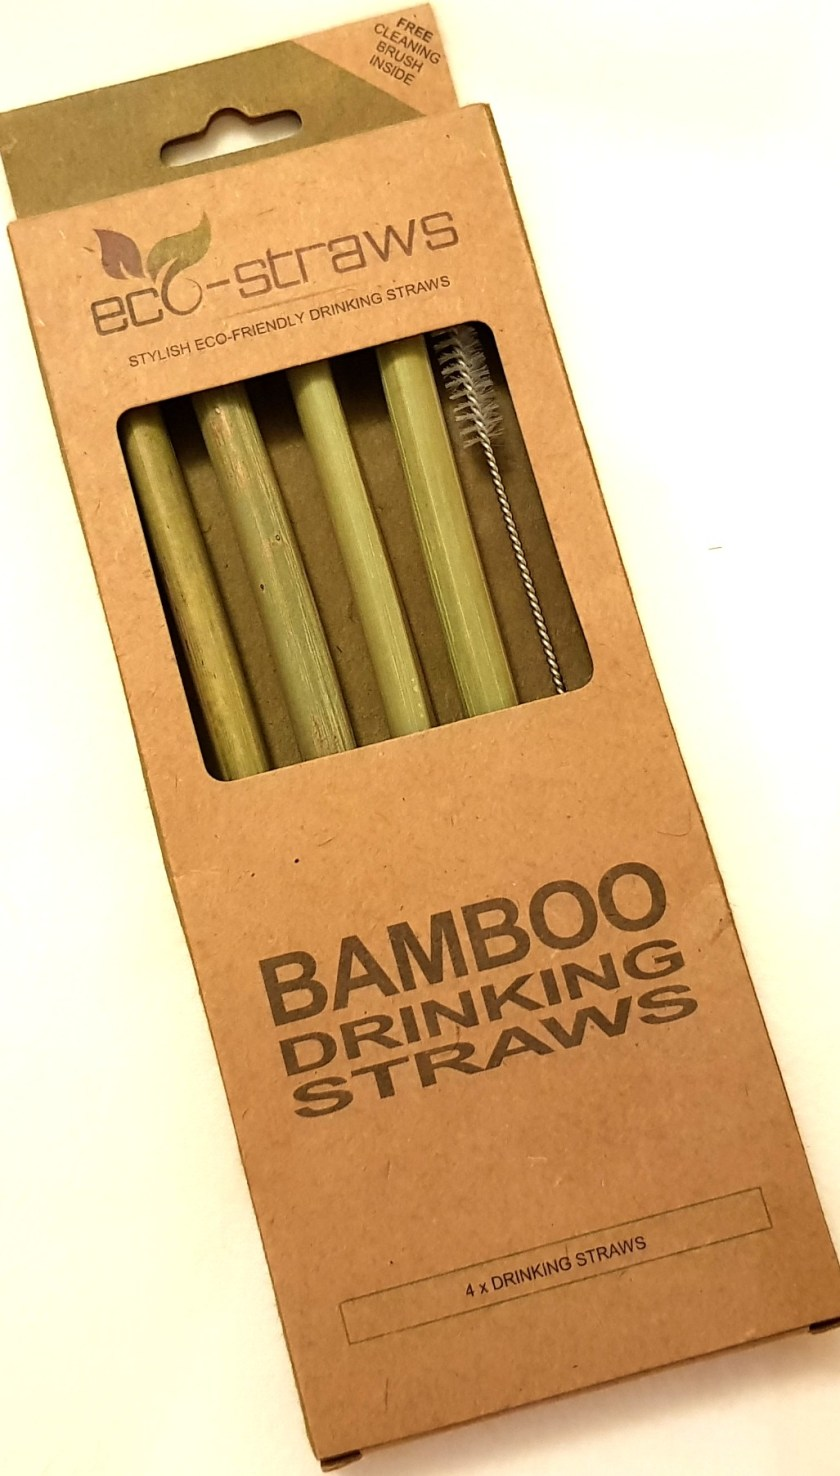 Bamboo straw, giveaway, competition, eco straws, #refusethestraw, #strawless, #StopSucking, plastic free, single use plastic, plastic straws, environment, sustainability, eco, green living, campaign